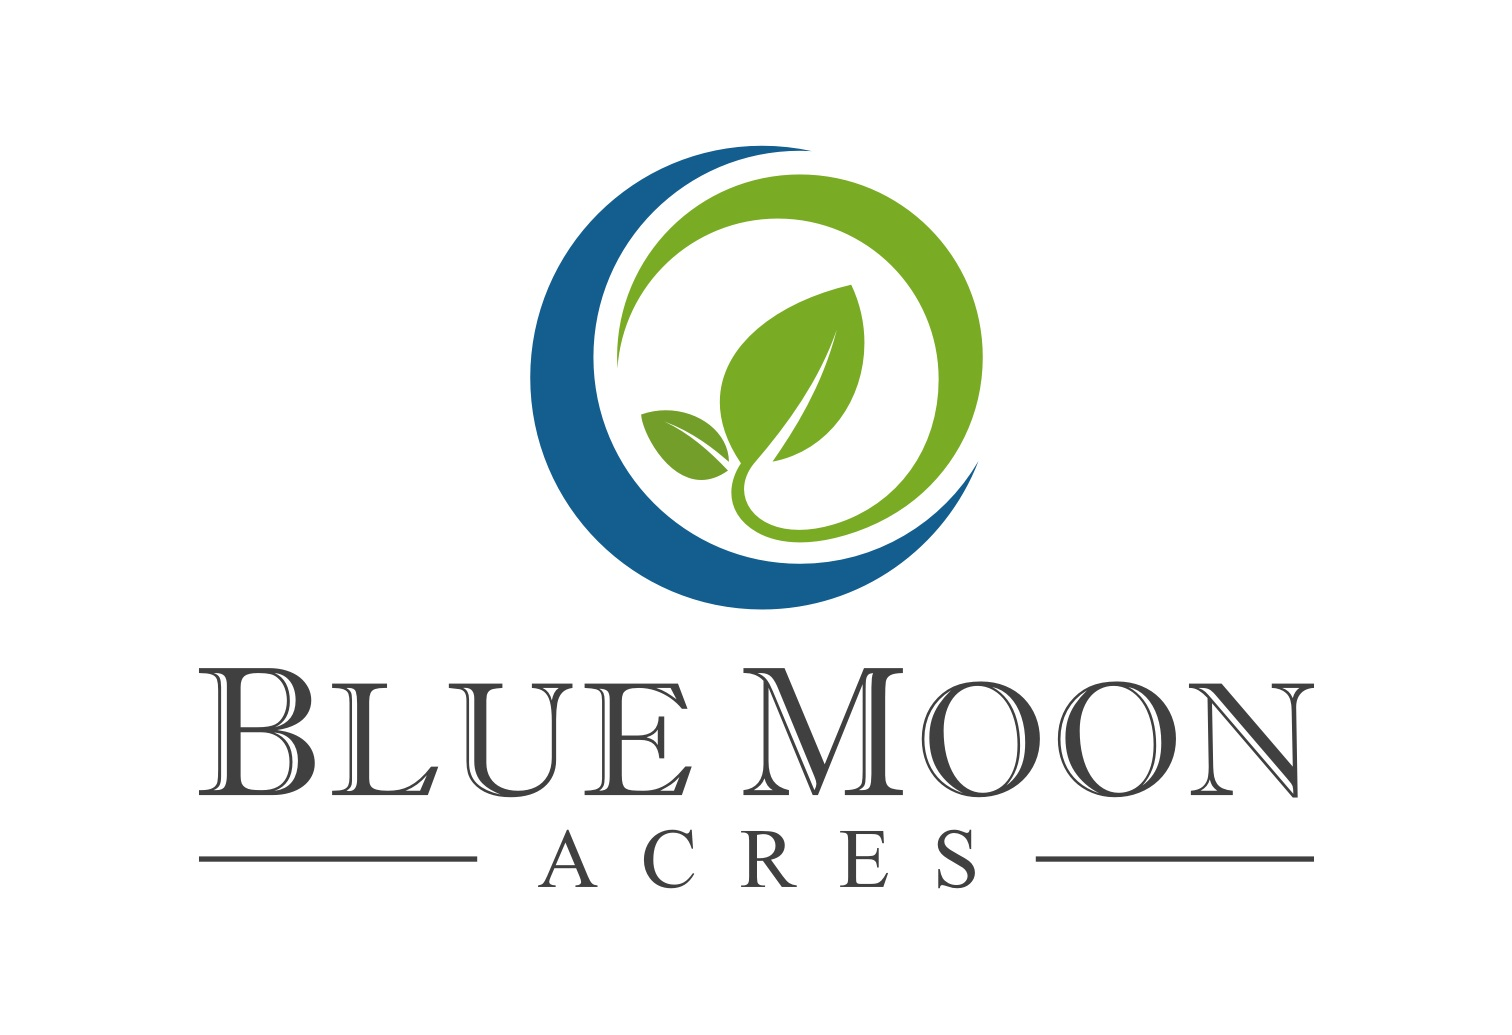 Blue moon acres logo